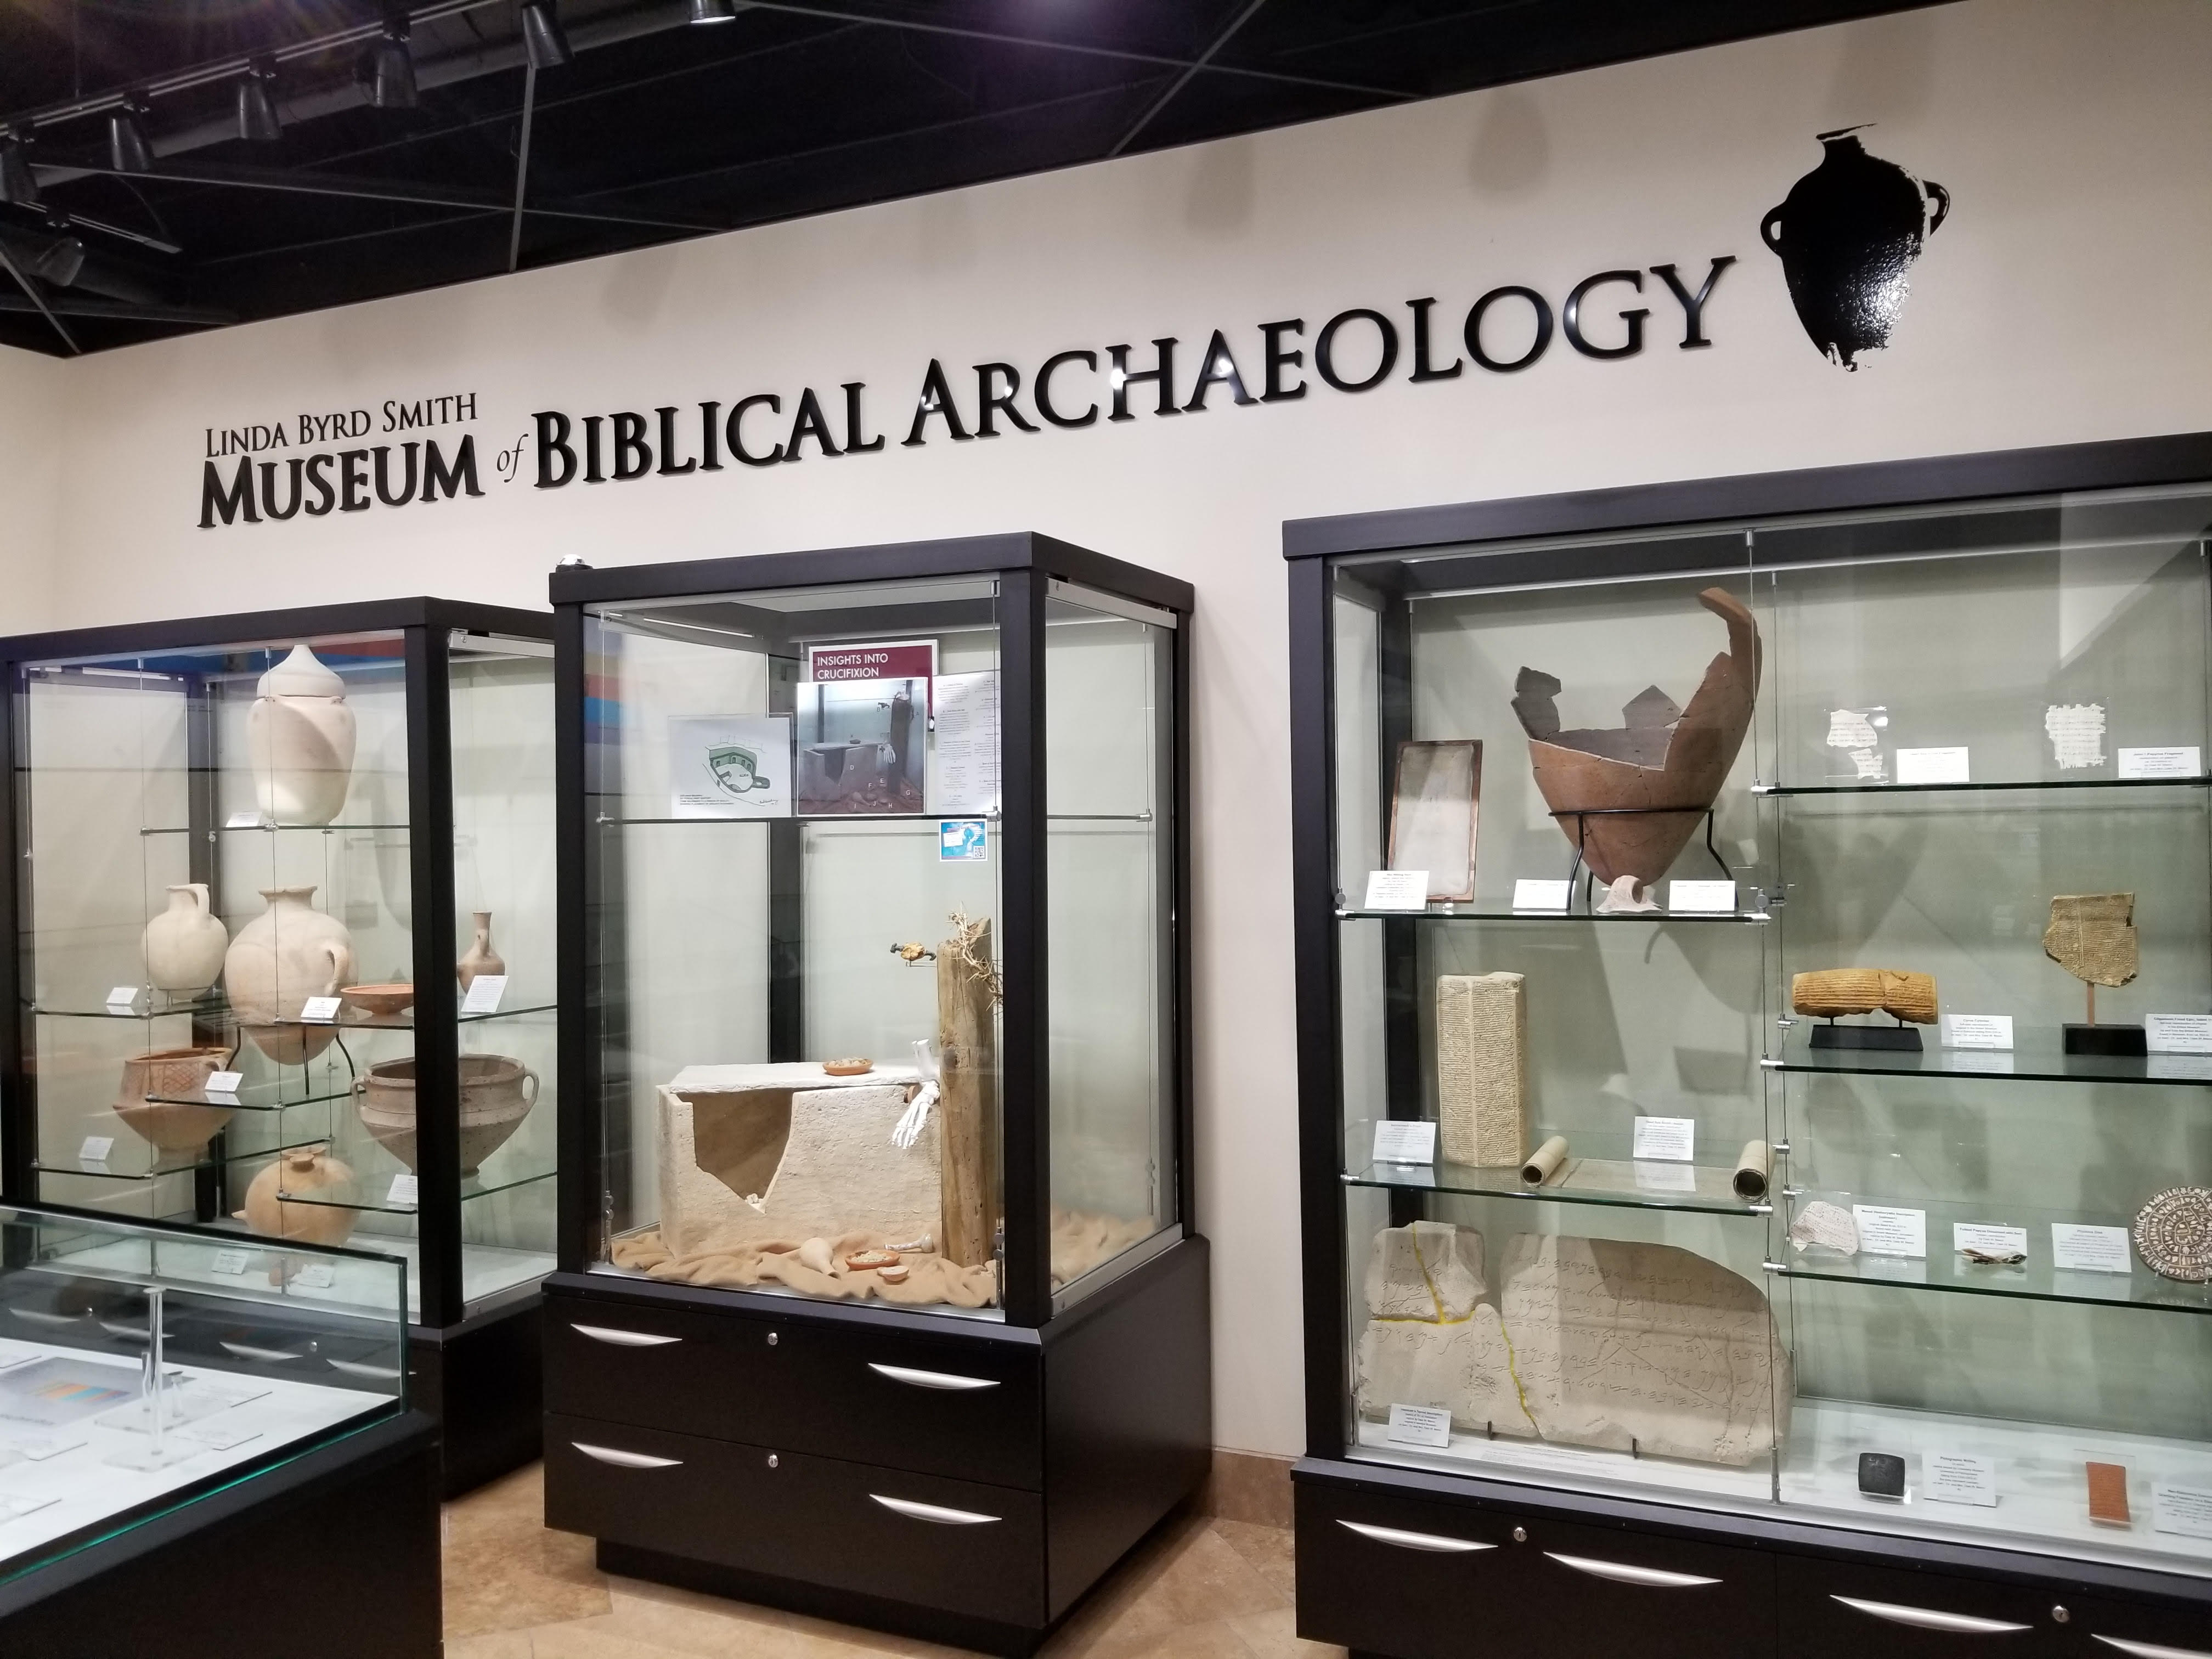 Linda Byrd Smith Museum of Biblical Archaeology